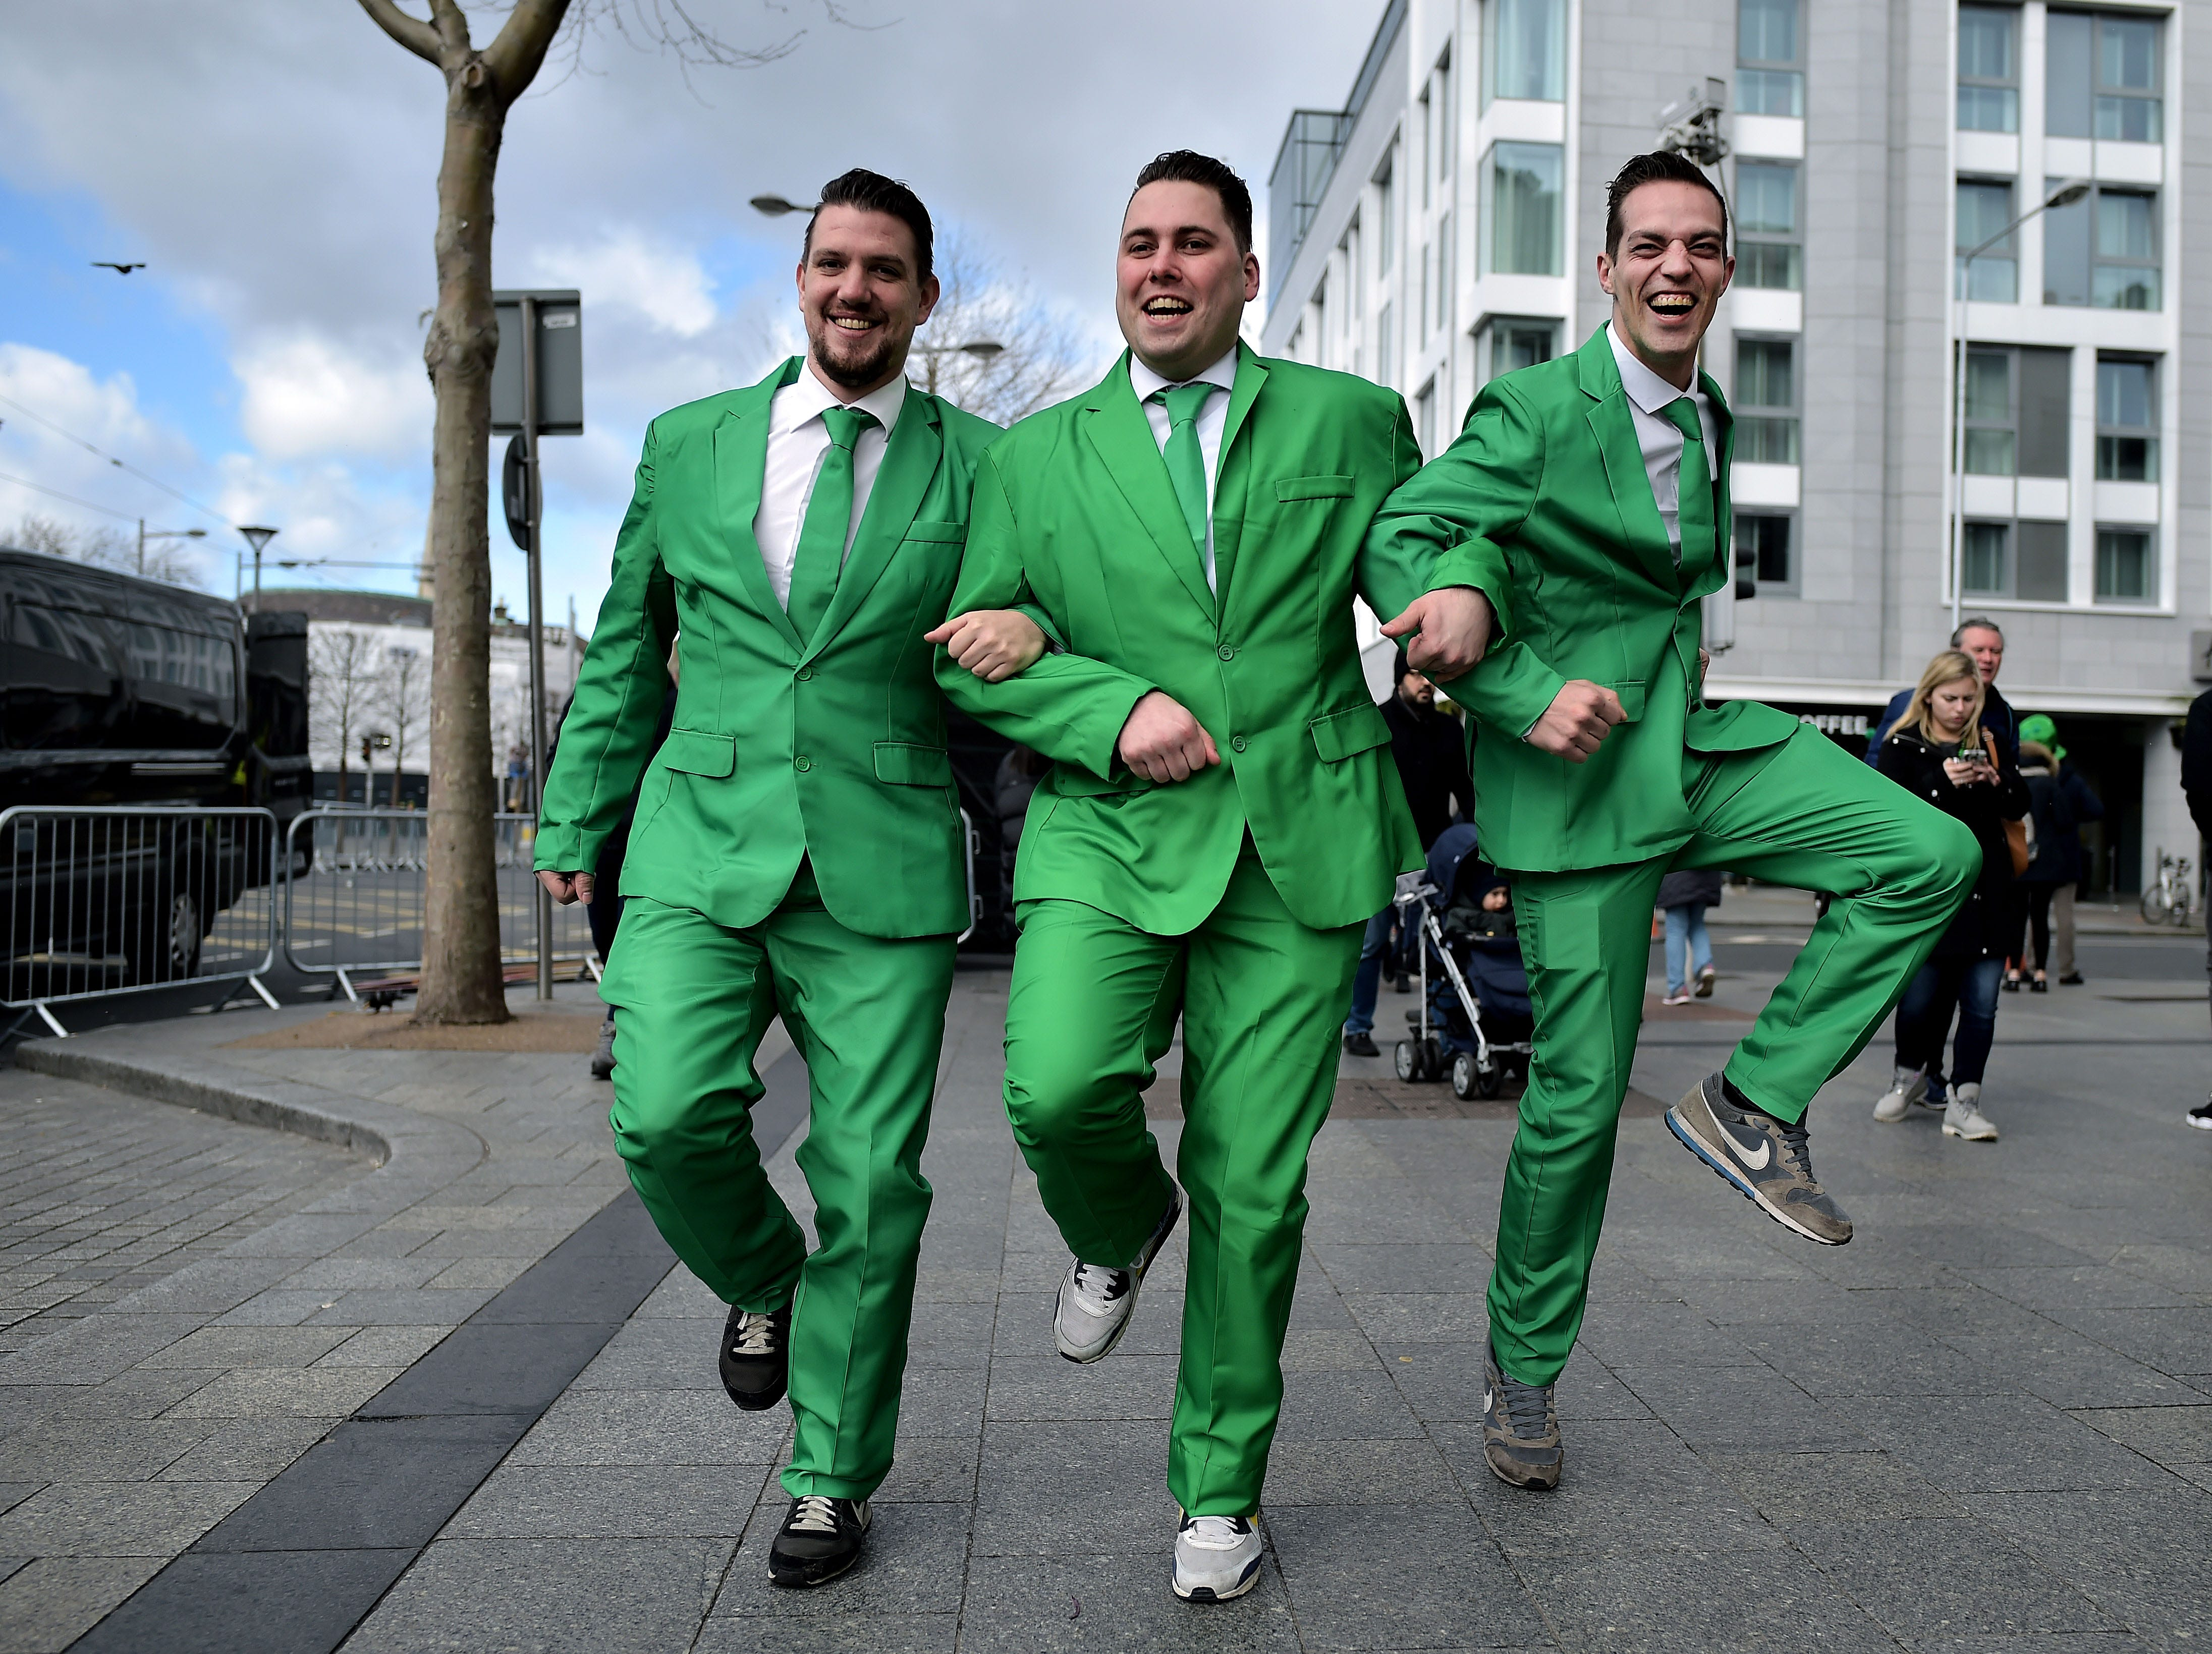 Revelers attend the Saint Patrick's Day parade on March 17, 2019 in Dublin, Ireland. Saint Patrick, the patron saint of Ireland is celebrated around the world on St. Patrick's Day. According to legend Saint Patrick used the three-leaved shamrock to explain the Holy Trinity to Irish pagans in the 5th-century after becoming a Christian missionary.